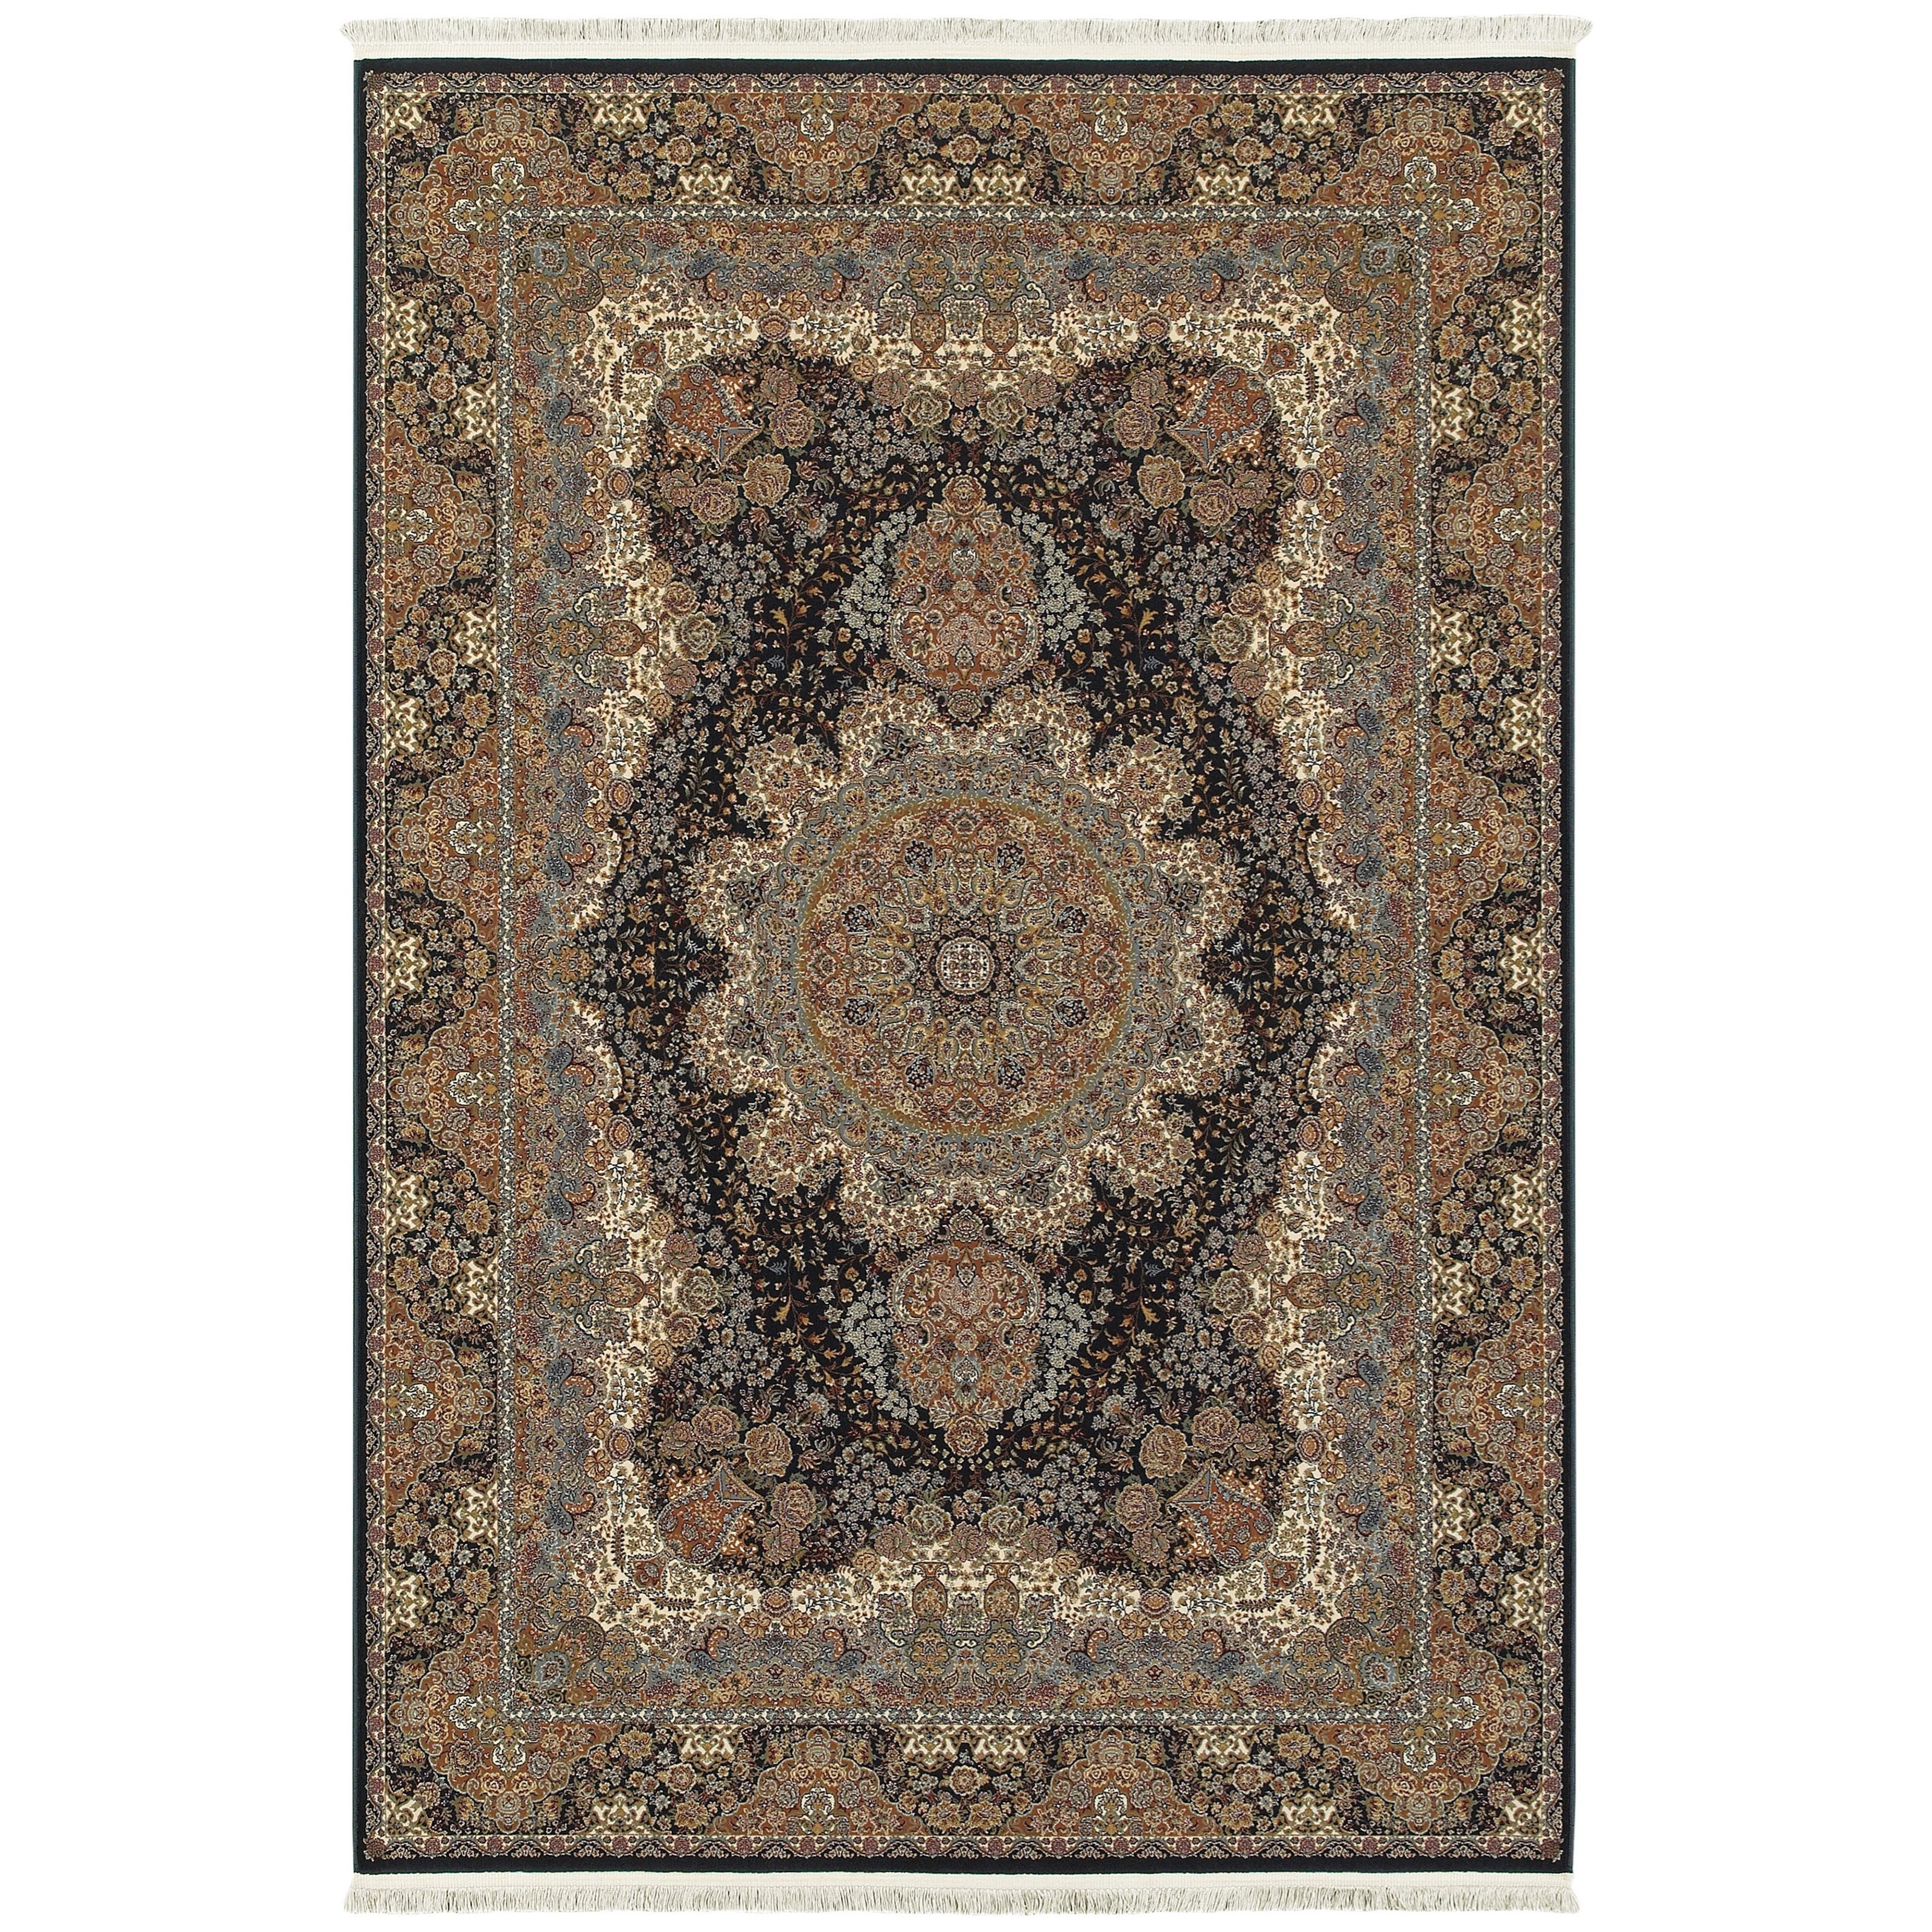 "Masterpiece 7'10"" X 10'10"" Rectangle Rug by Oriental Weavers at Novello Home Furnishings"